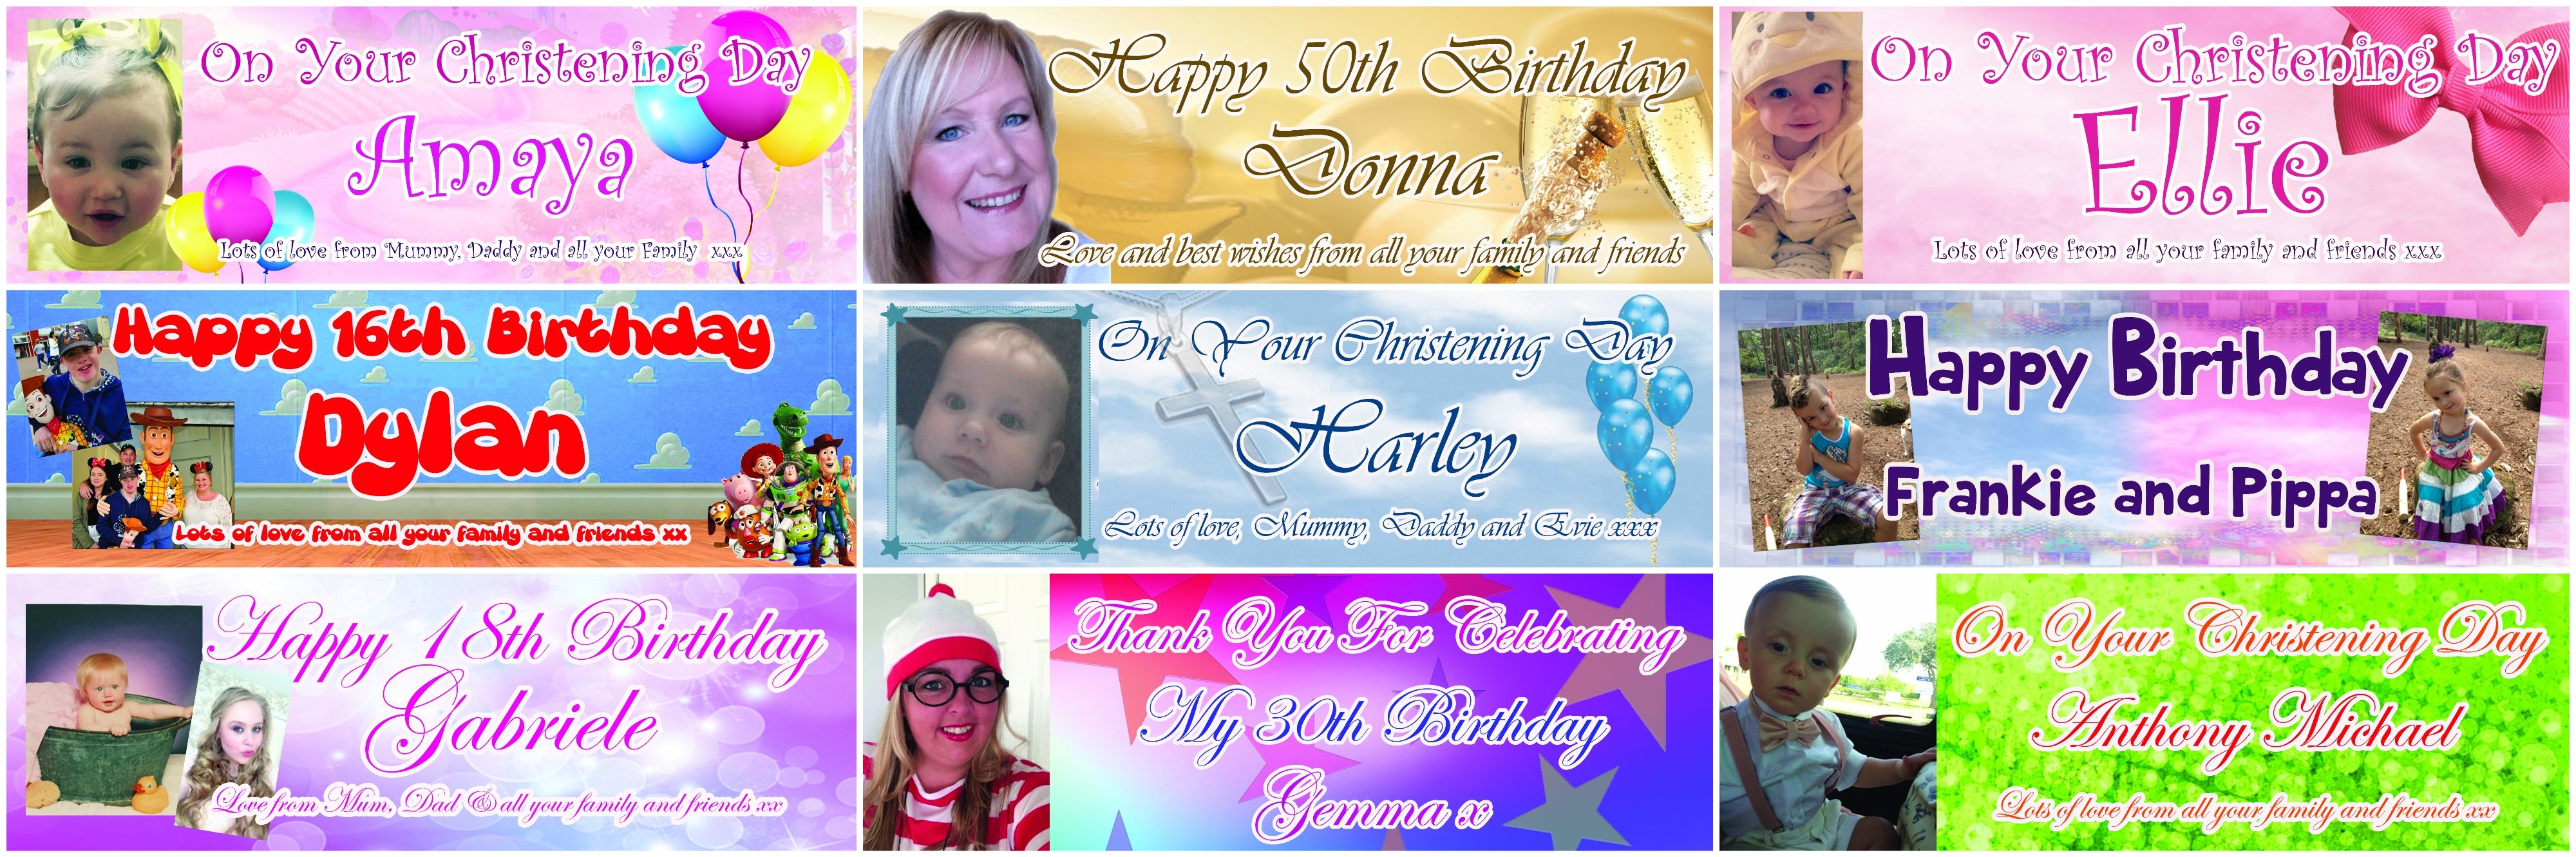 personalised photo birthday banners ; banner-collage-2